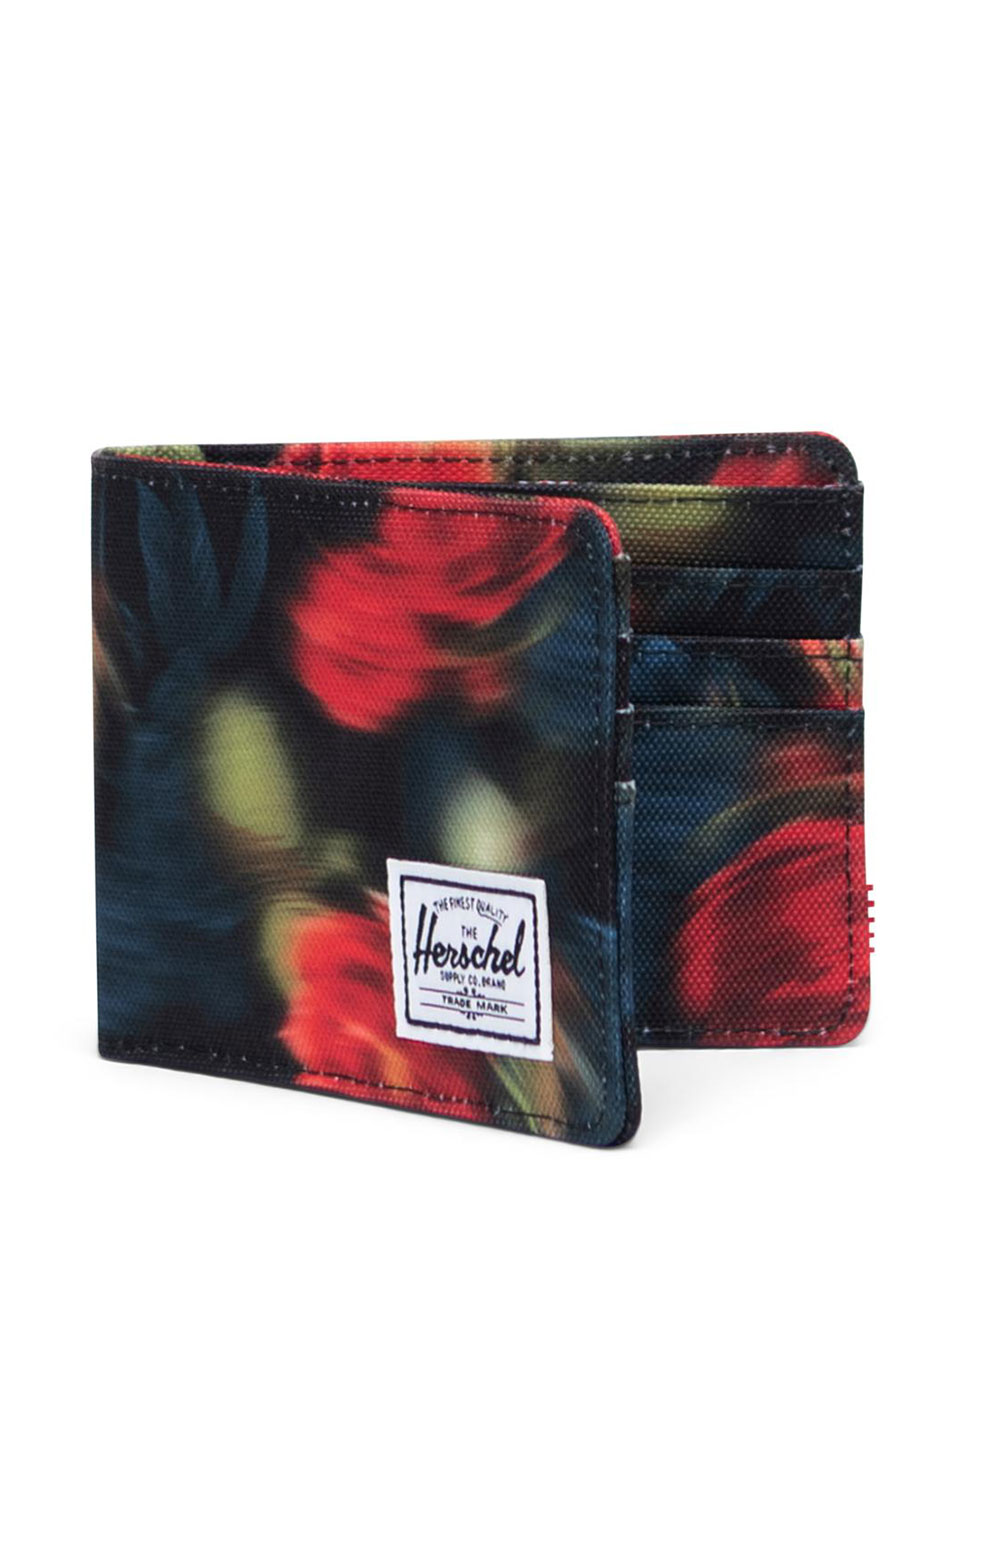 Roy Wallet - Blurry Roses  2